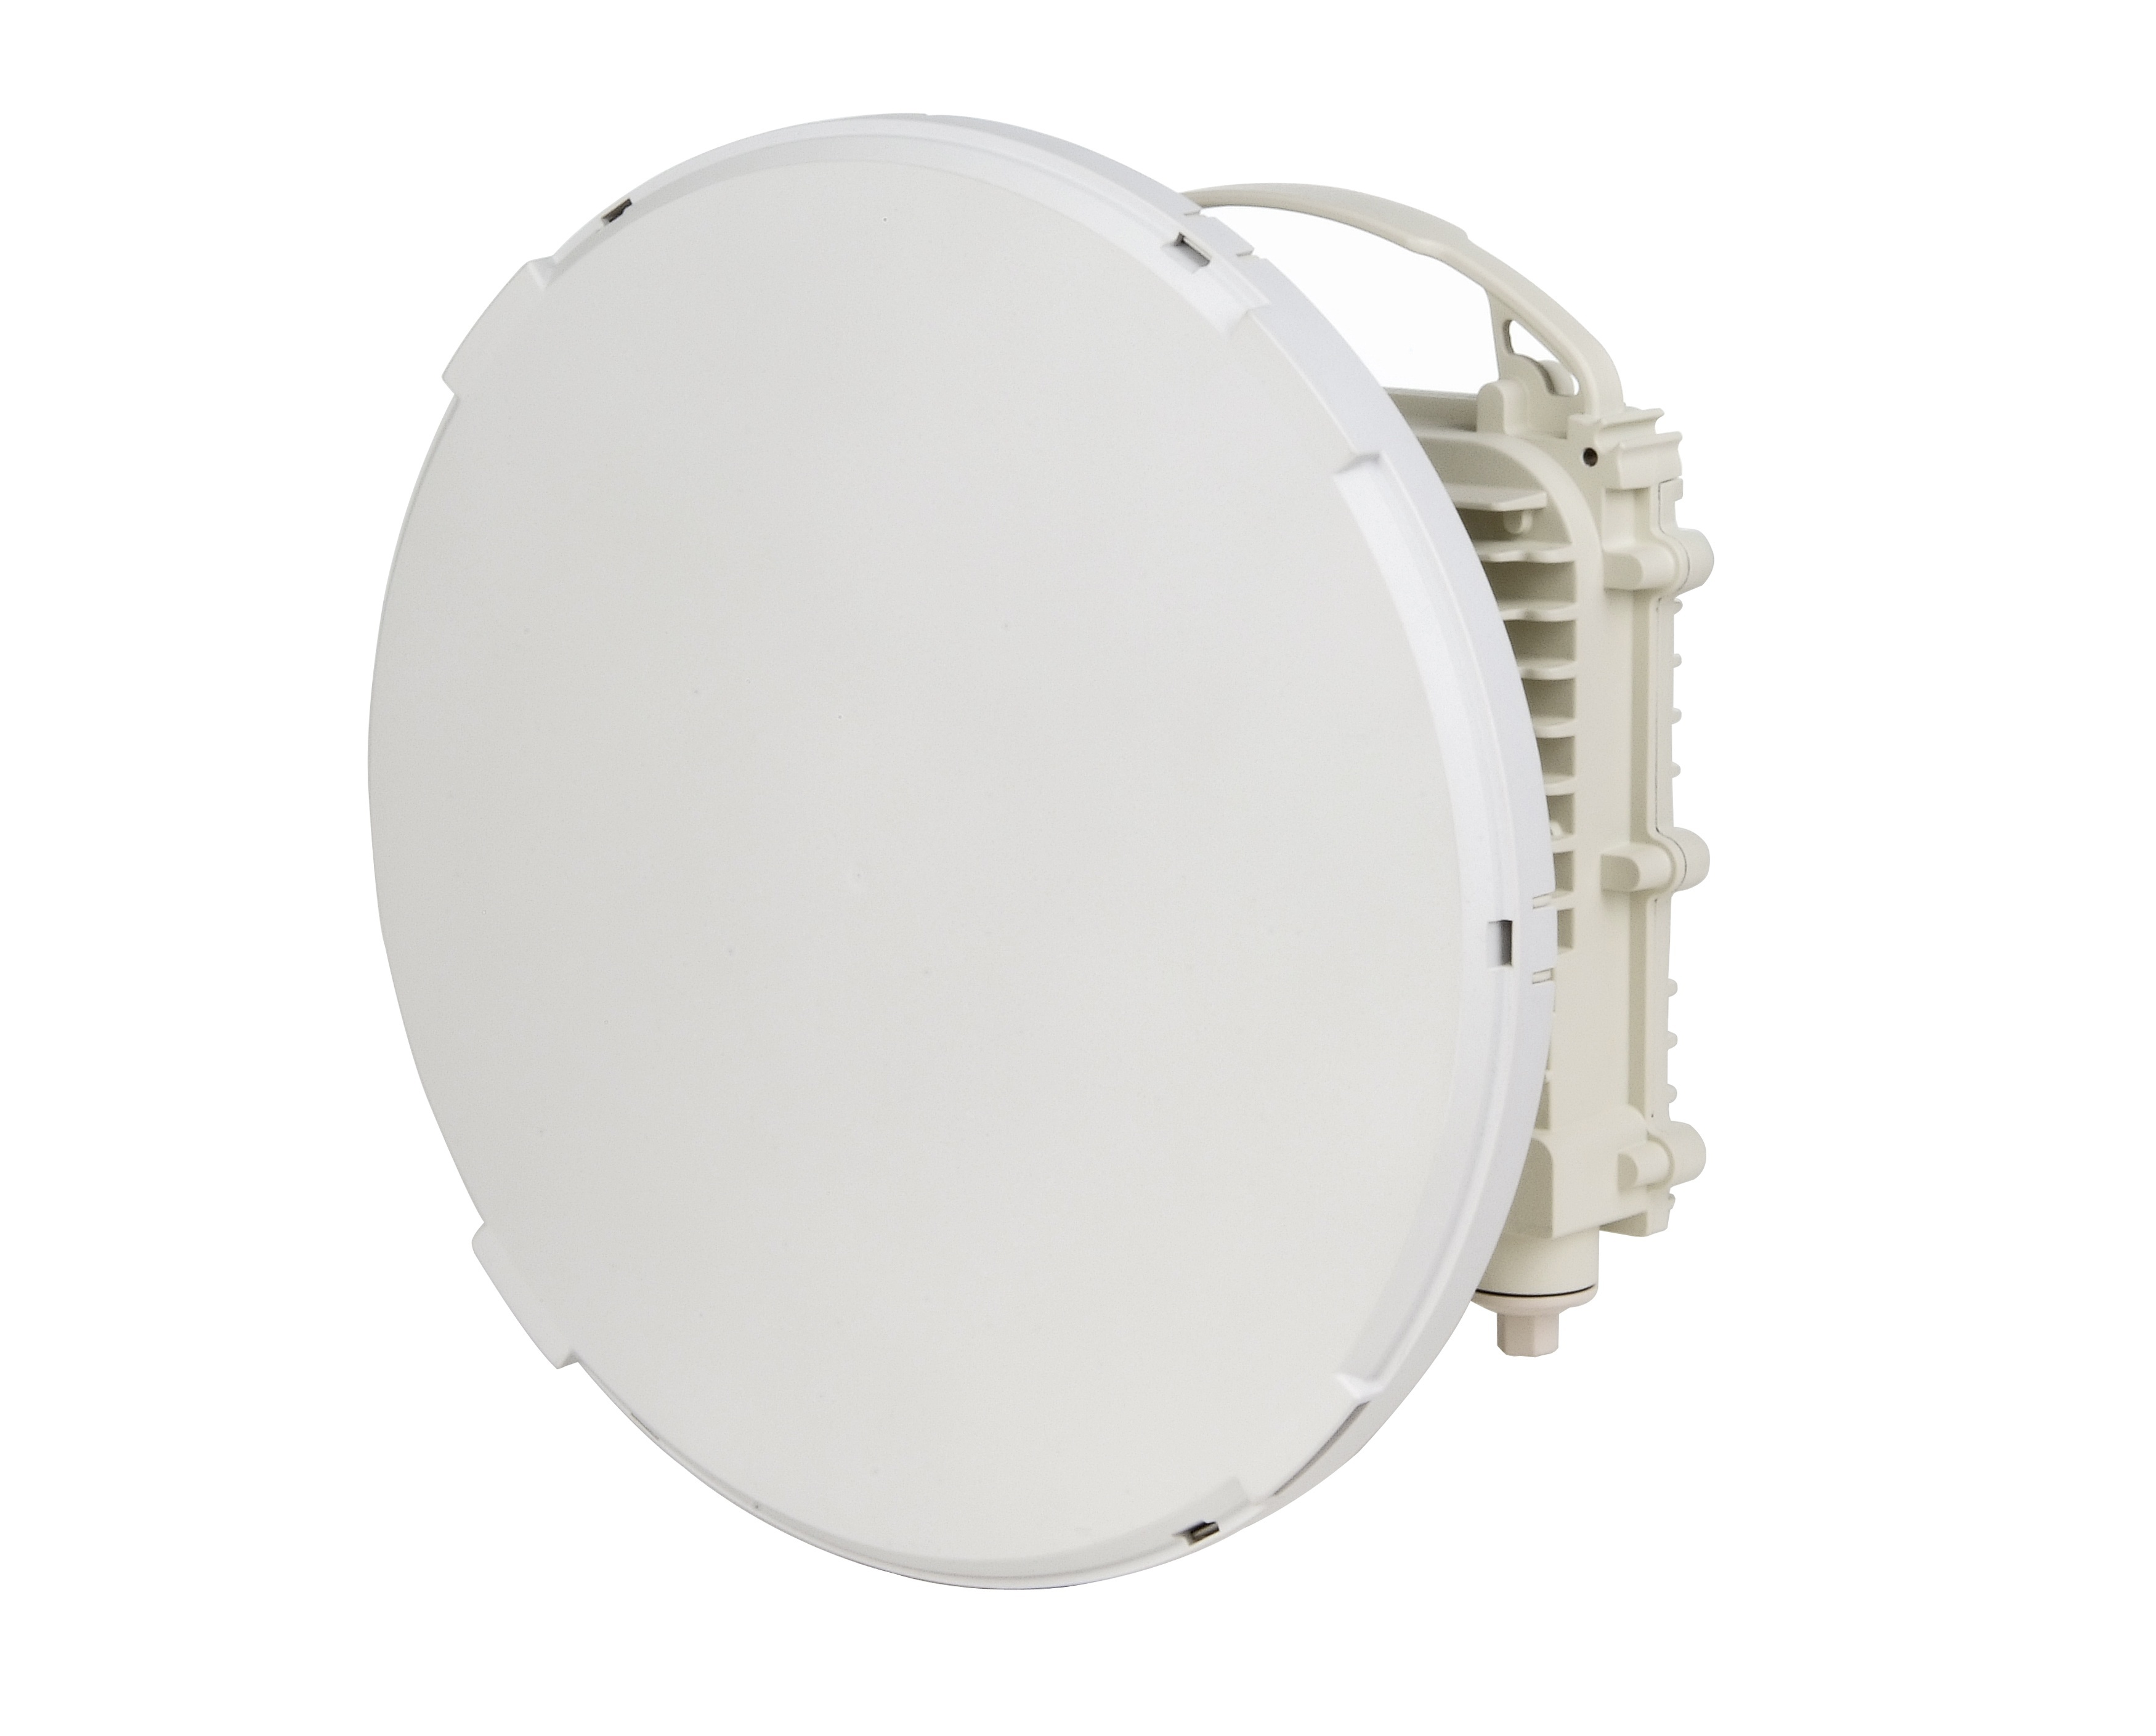 Siklu EtherHaul EH1200F 1Gbp/s Full Duplex FDD, up to 3Km, 70GHz/80GHz E-Band Radio 1ft Antenna